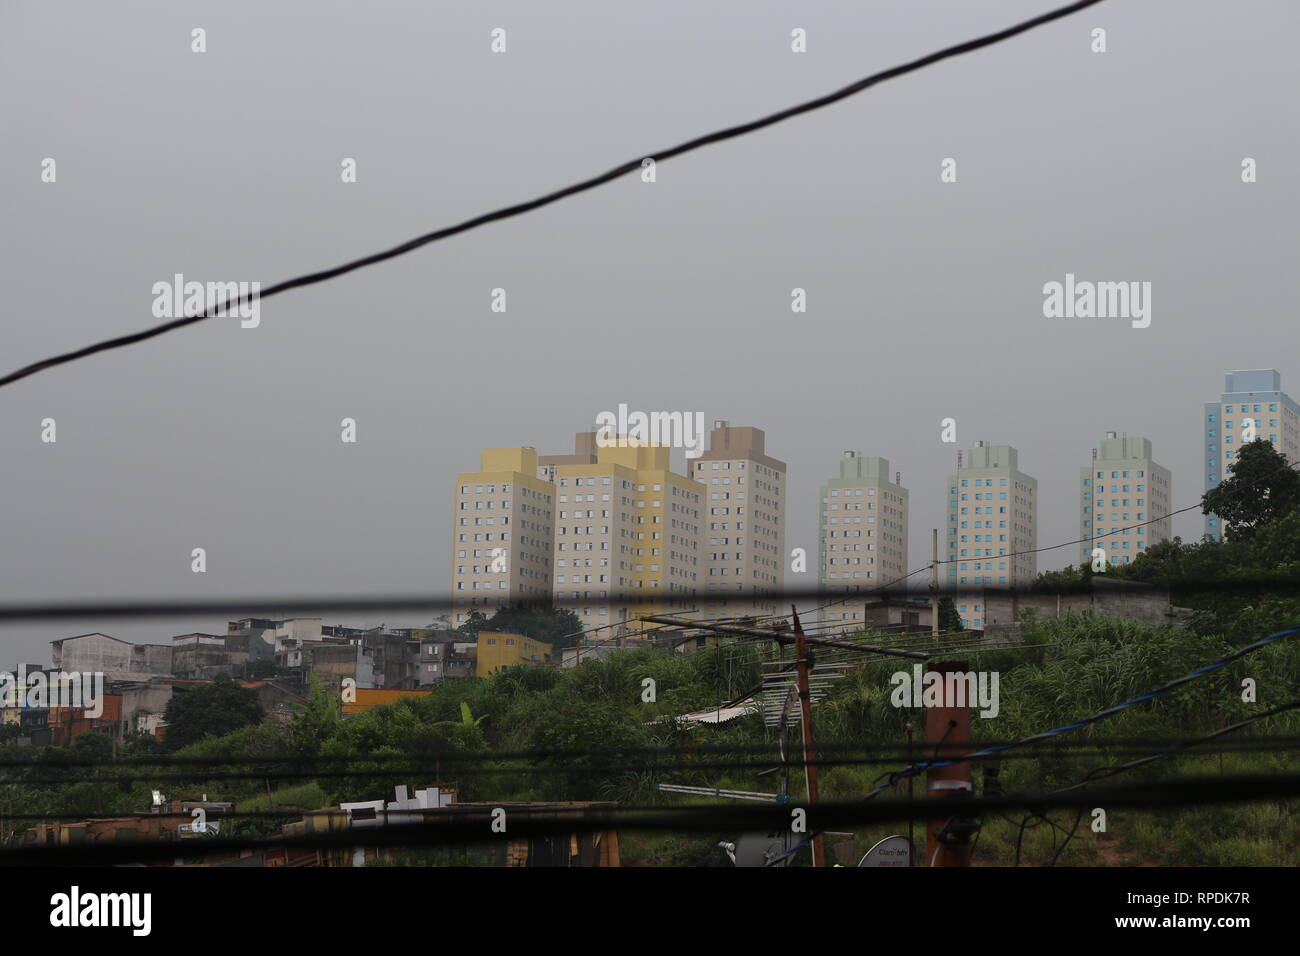 Urban landscape of a rainy and cloudy day seen from a window. Stock Photo